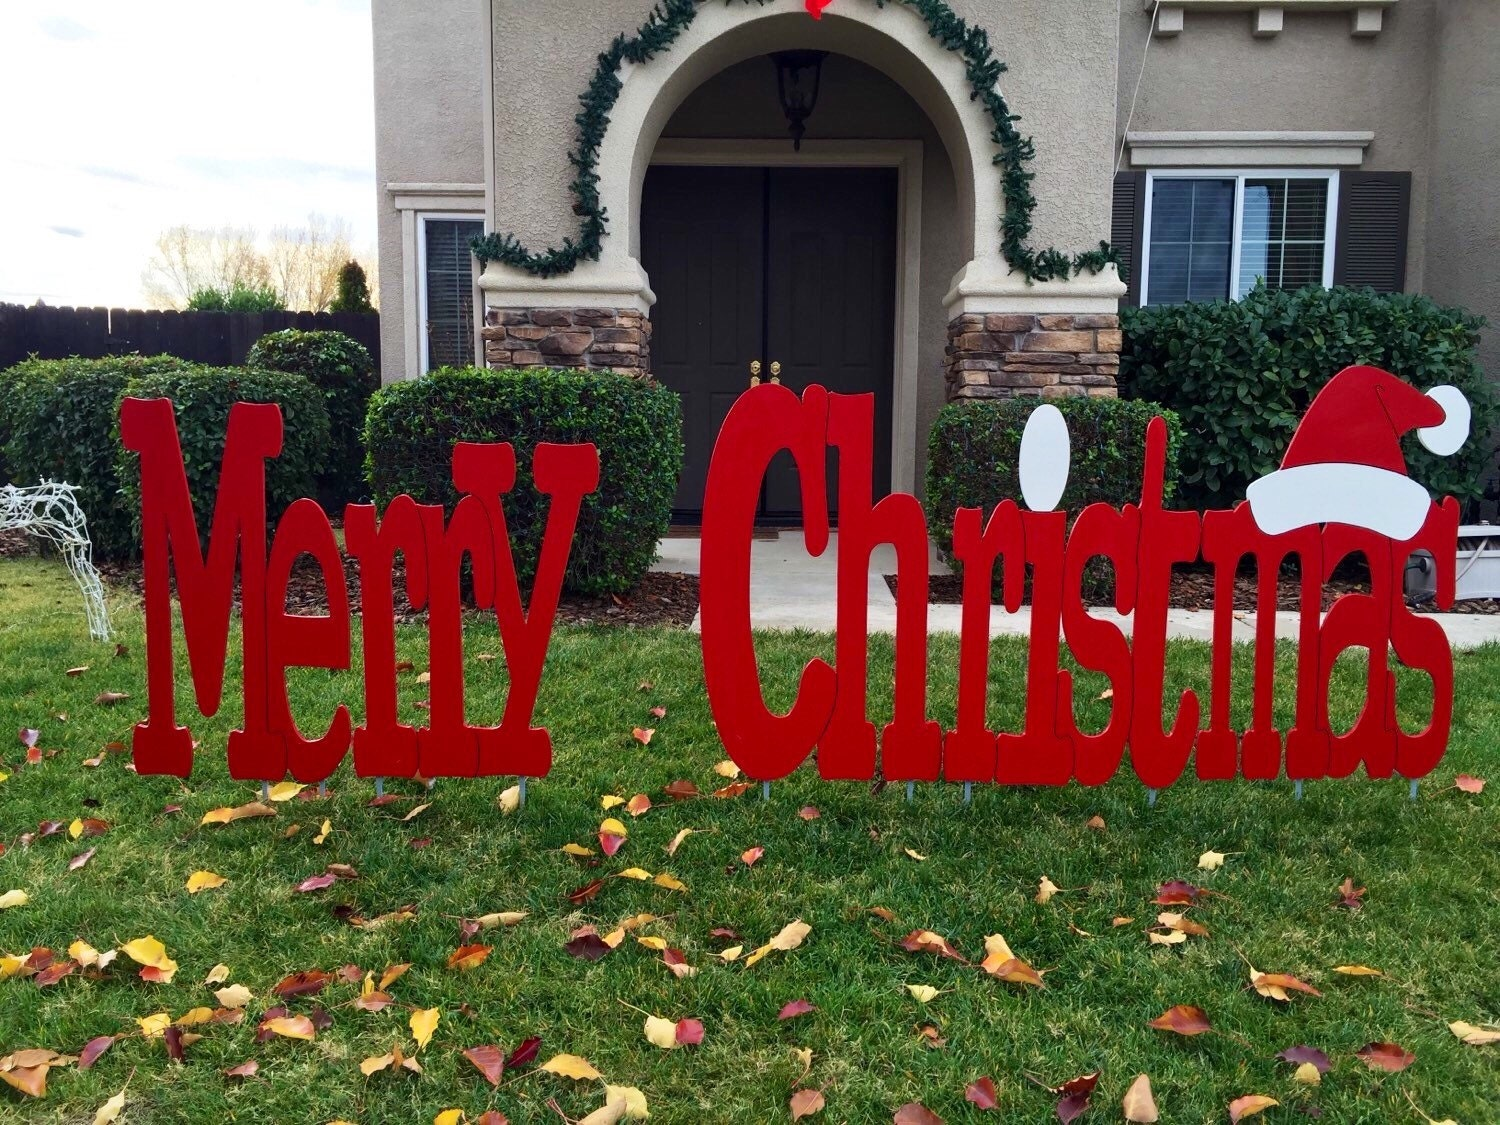 Merry christmas outdoor holiday yard art sign large for Christmas yard ornaments